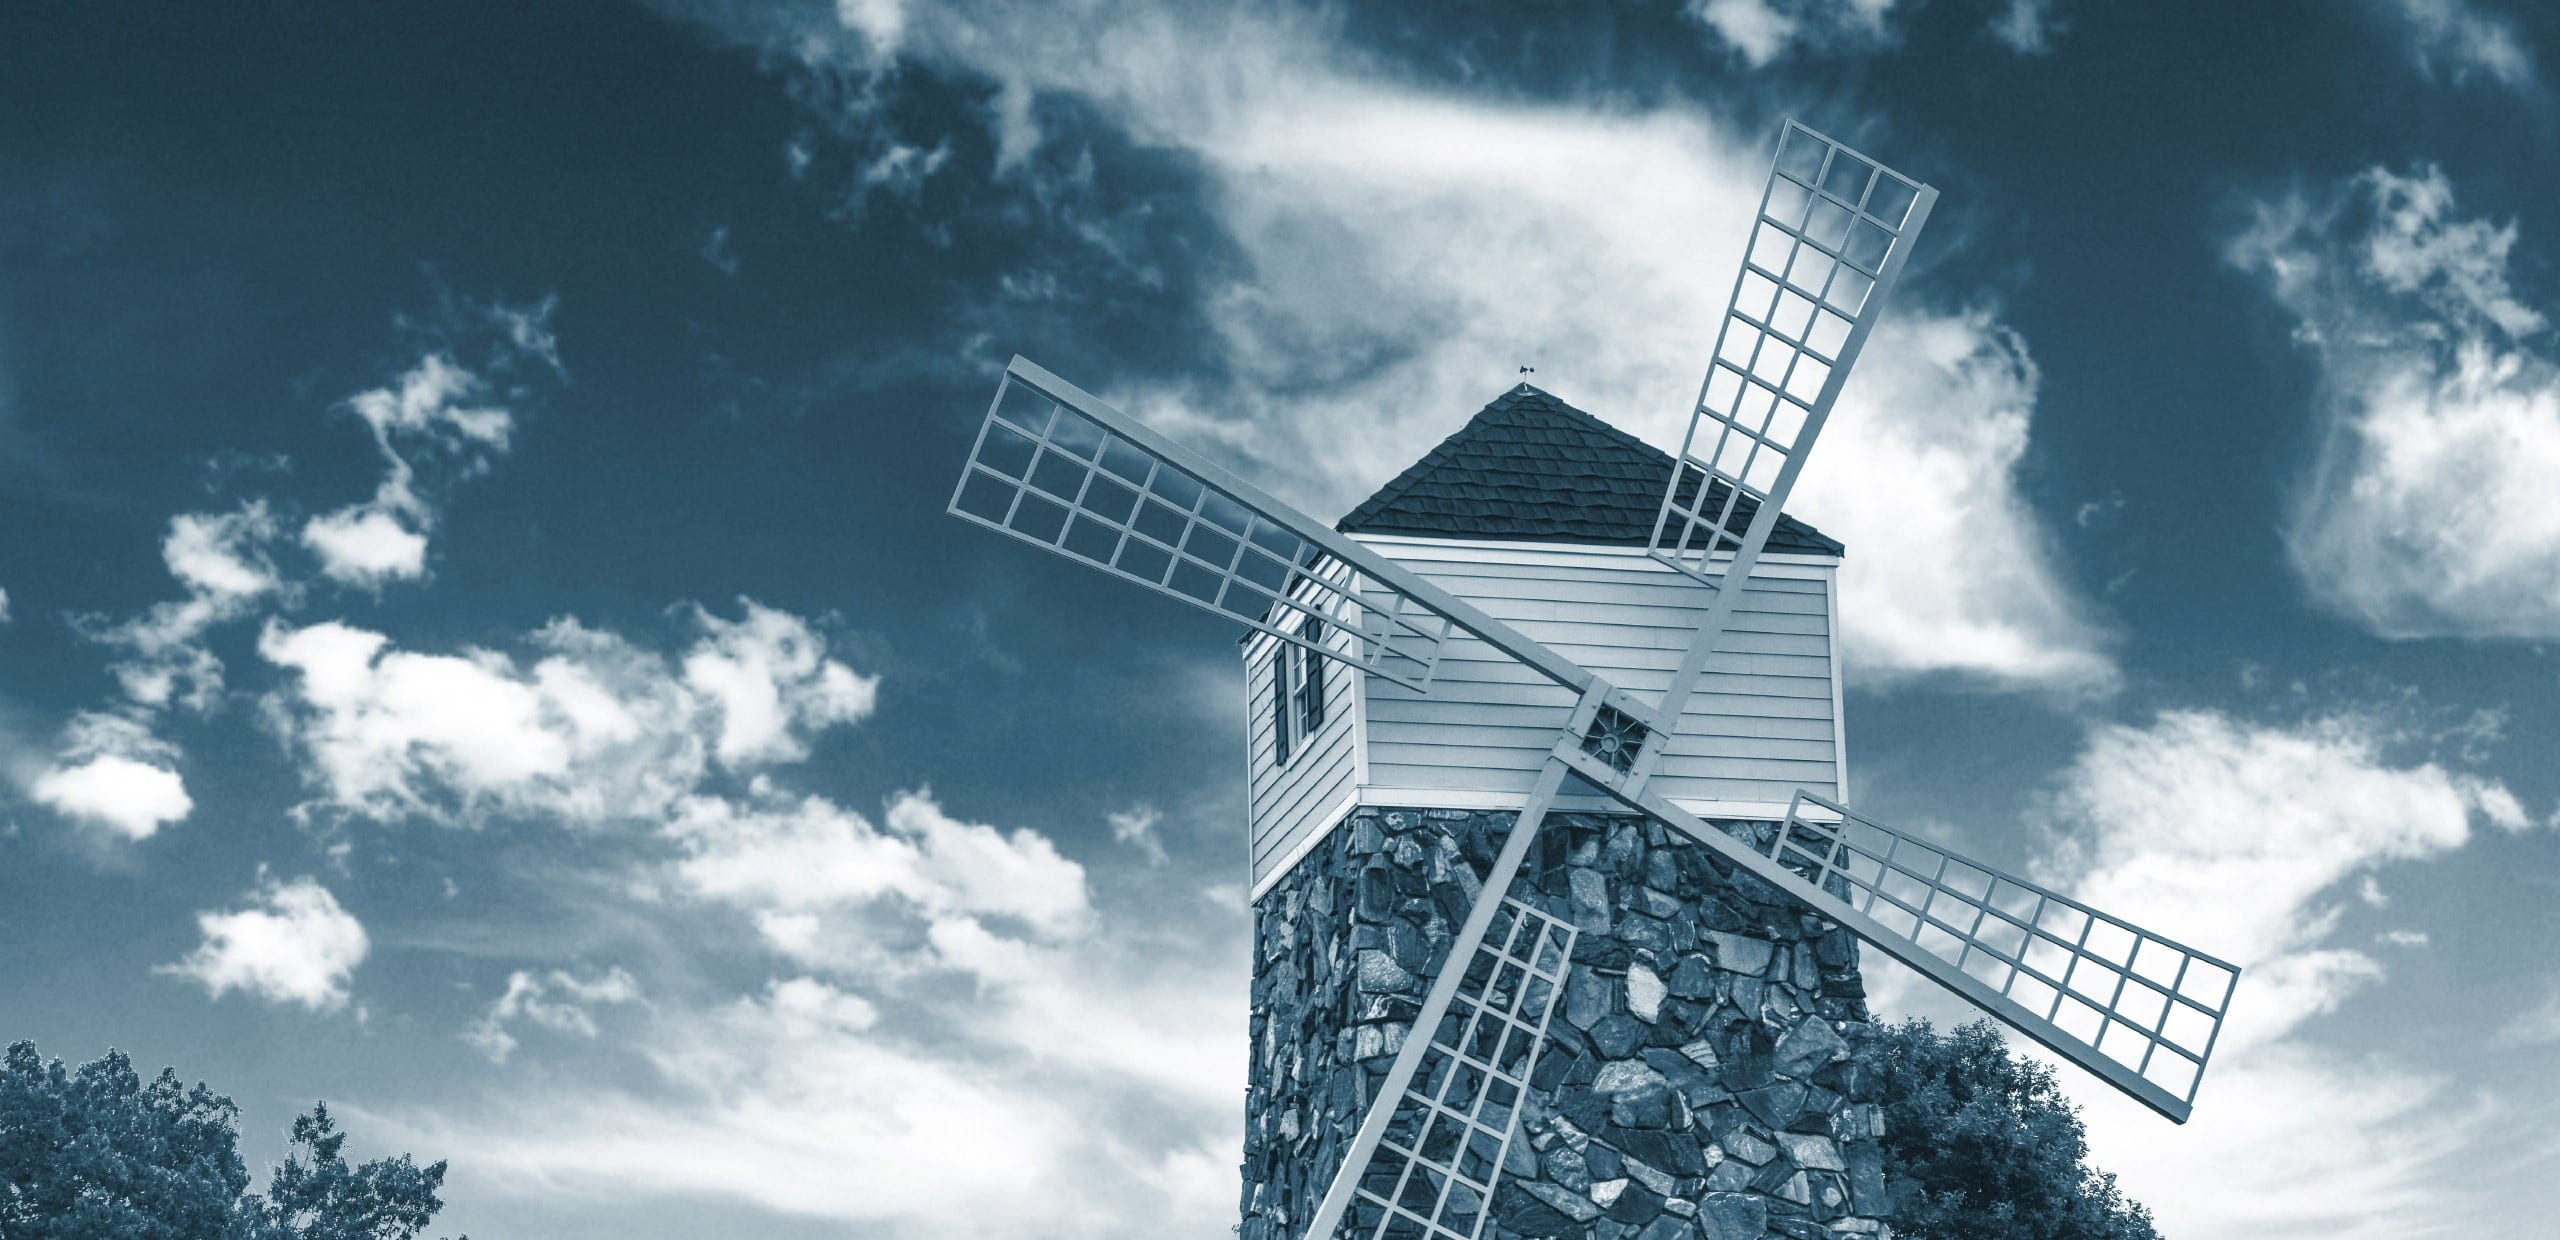 A windmill standing against a peaceful blue sky.